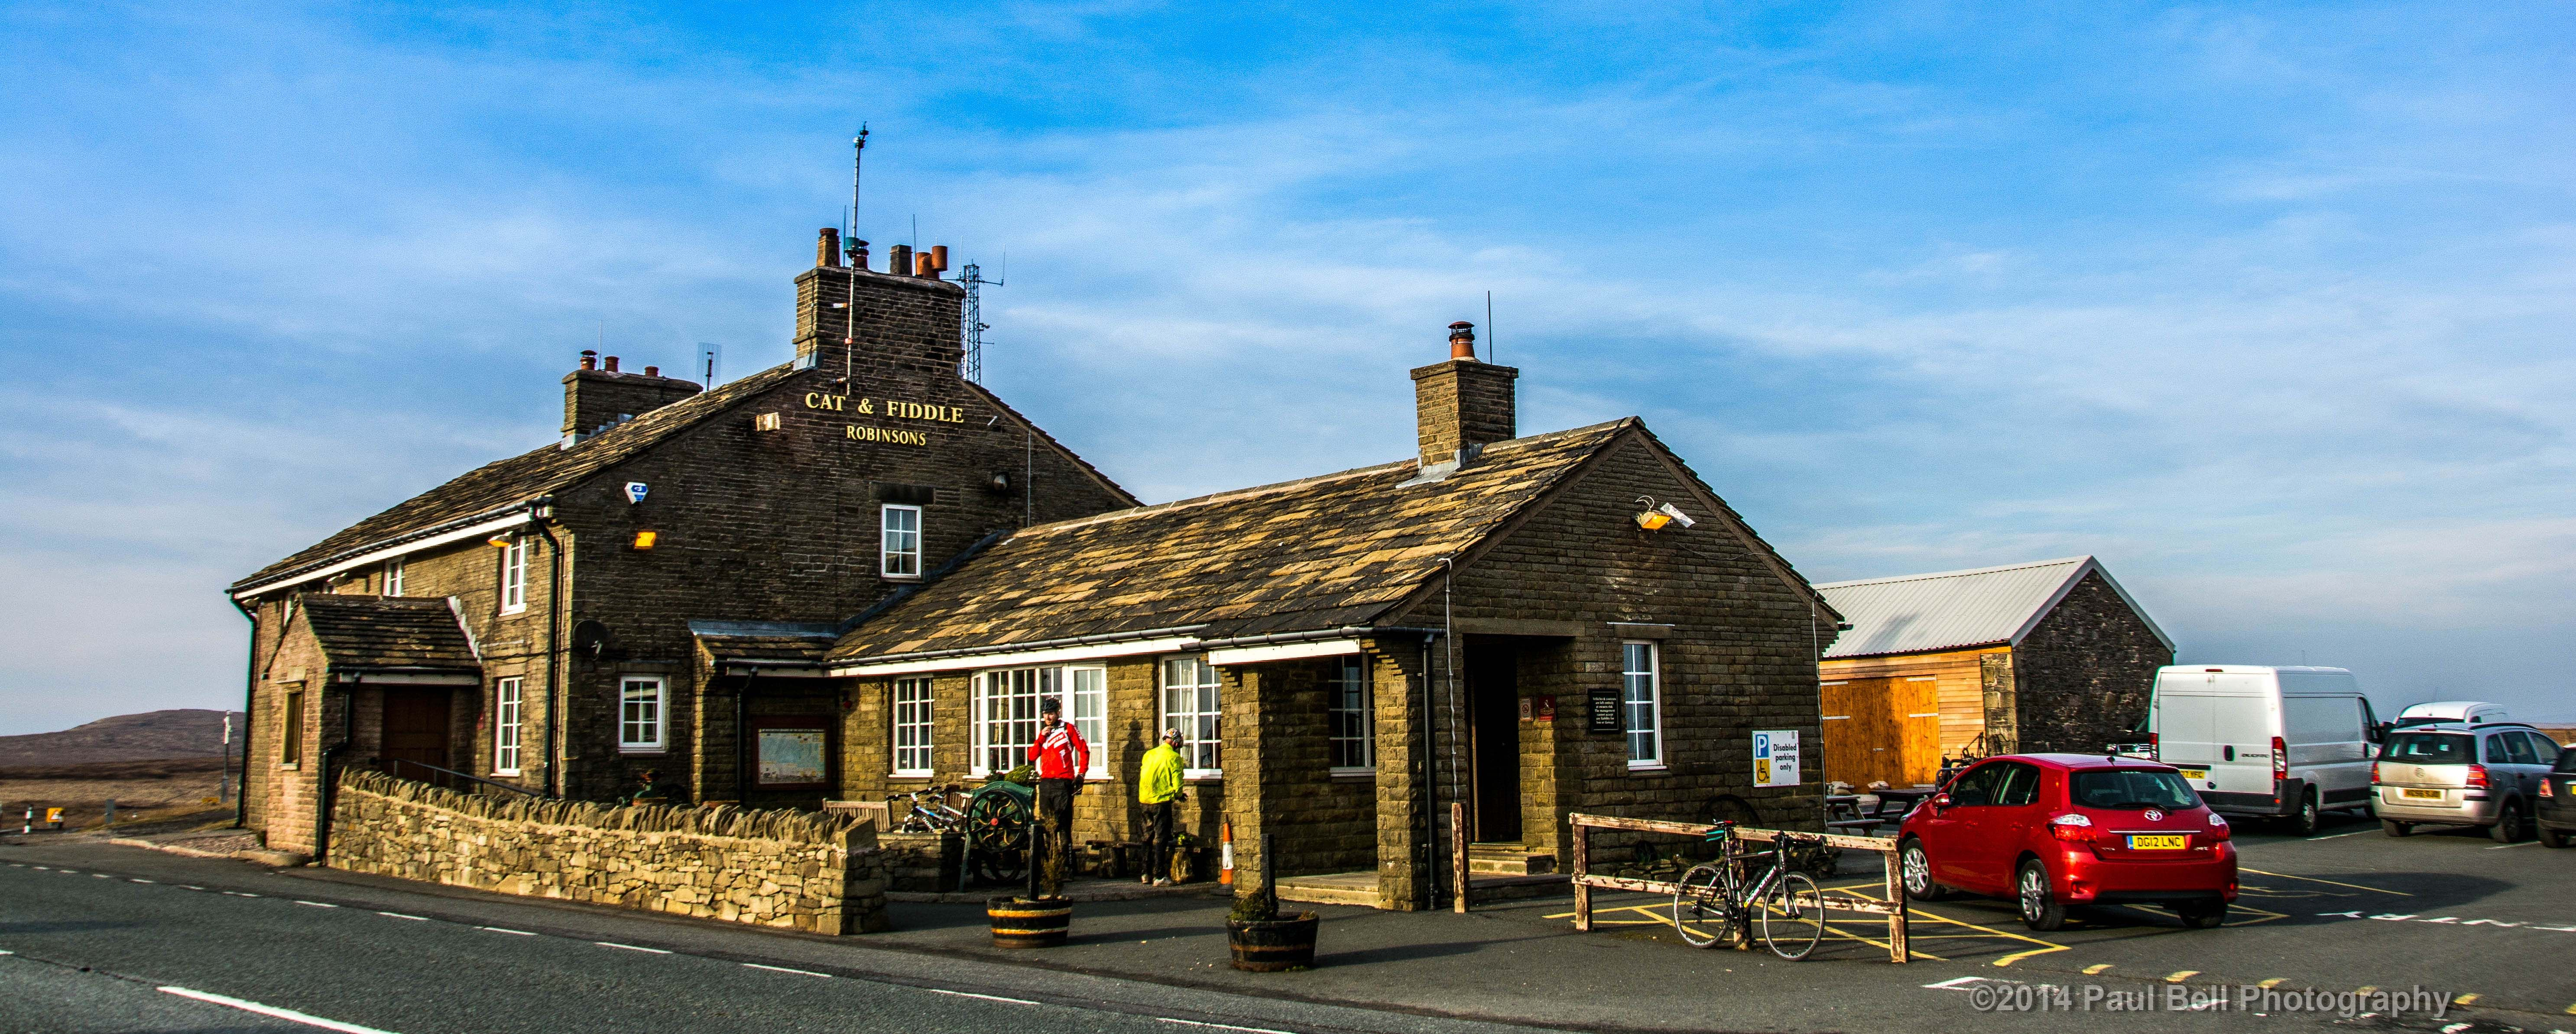 The Cat and Fiddle Pub!! Yipee............... House